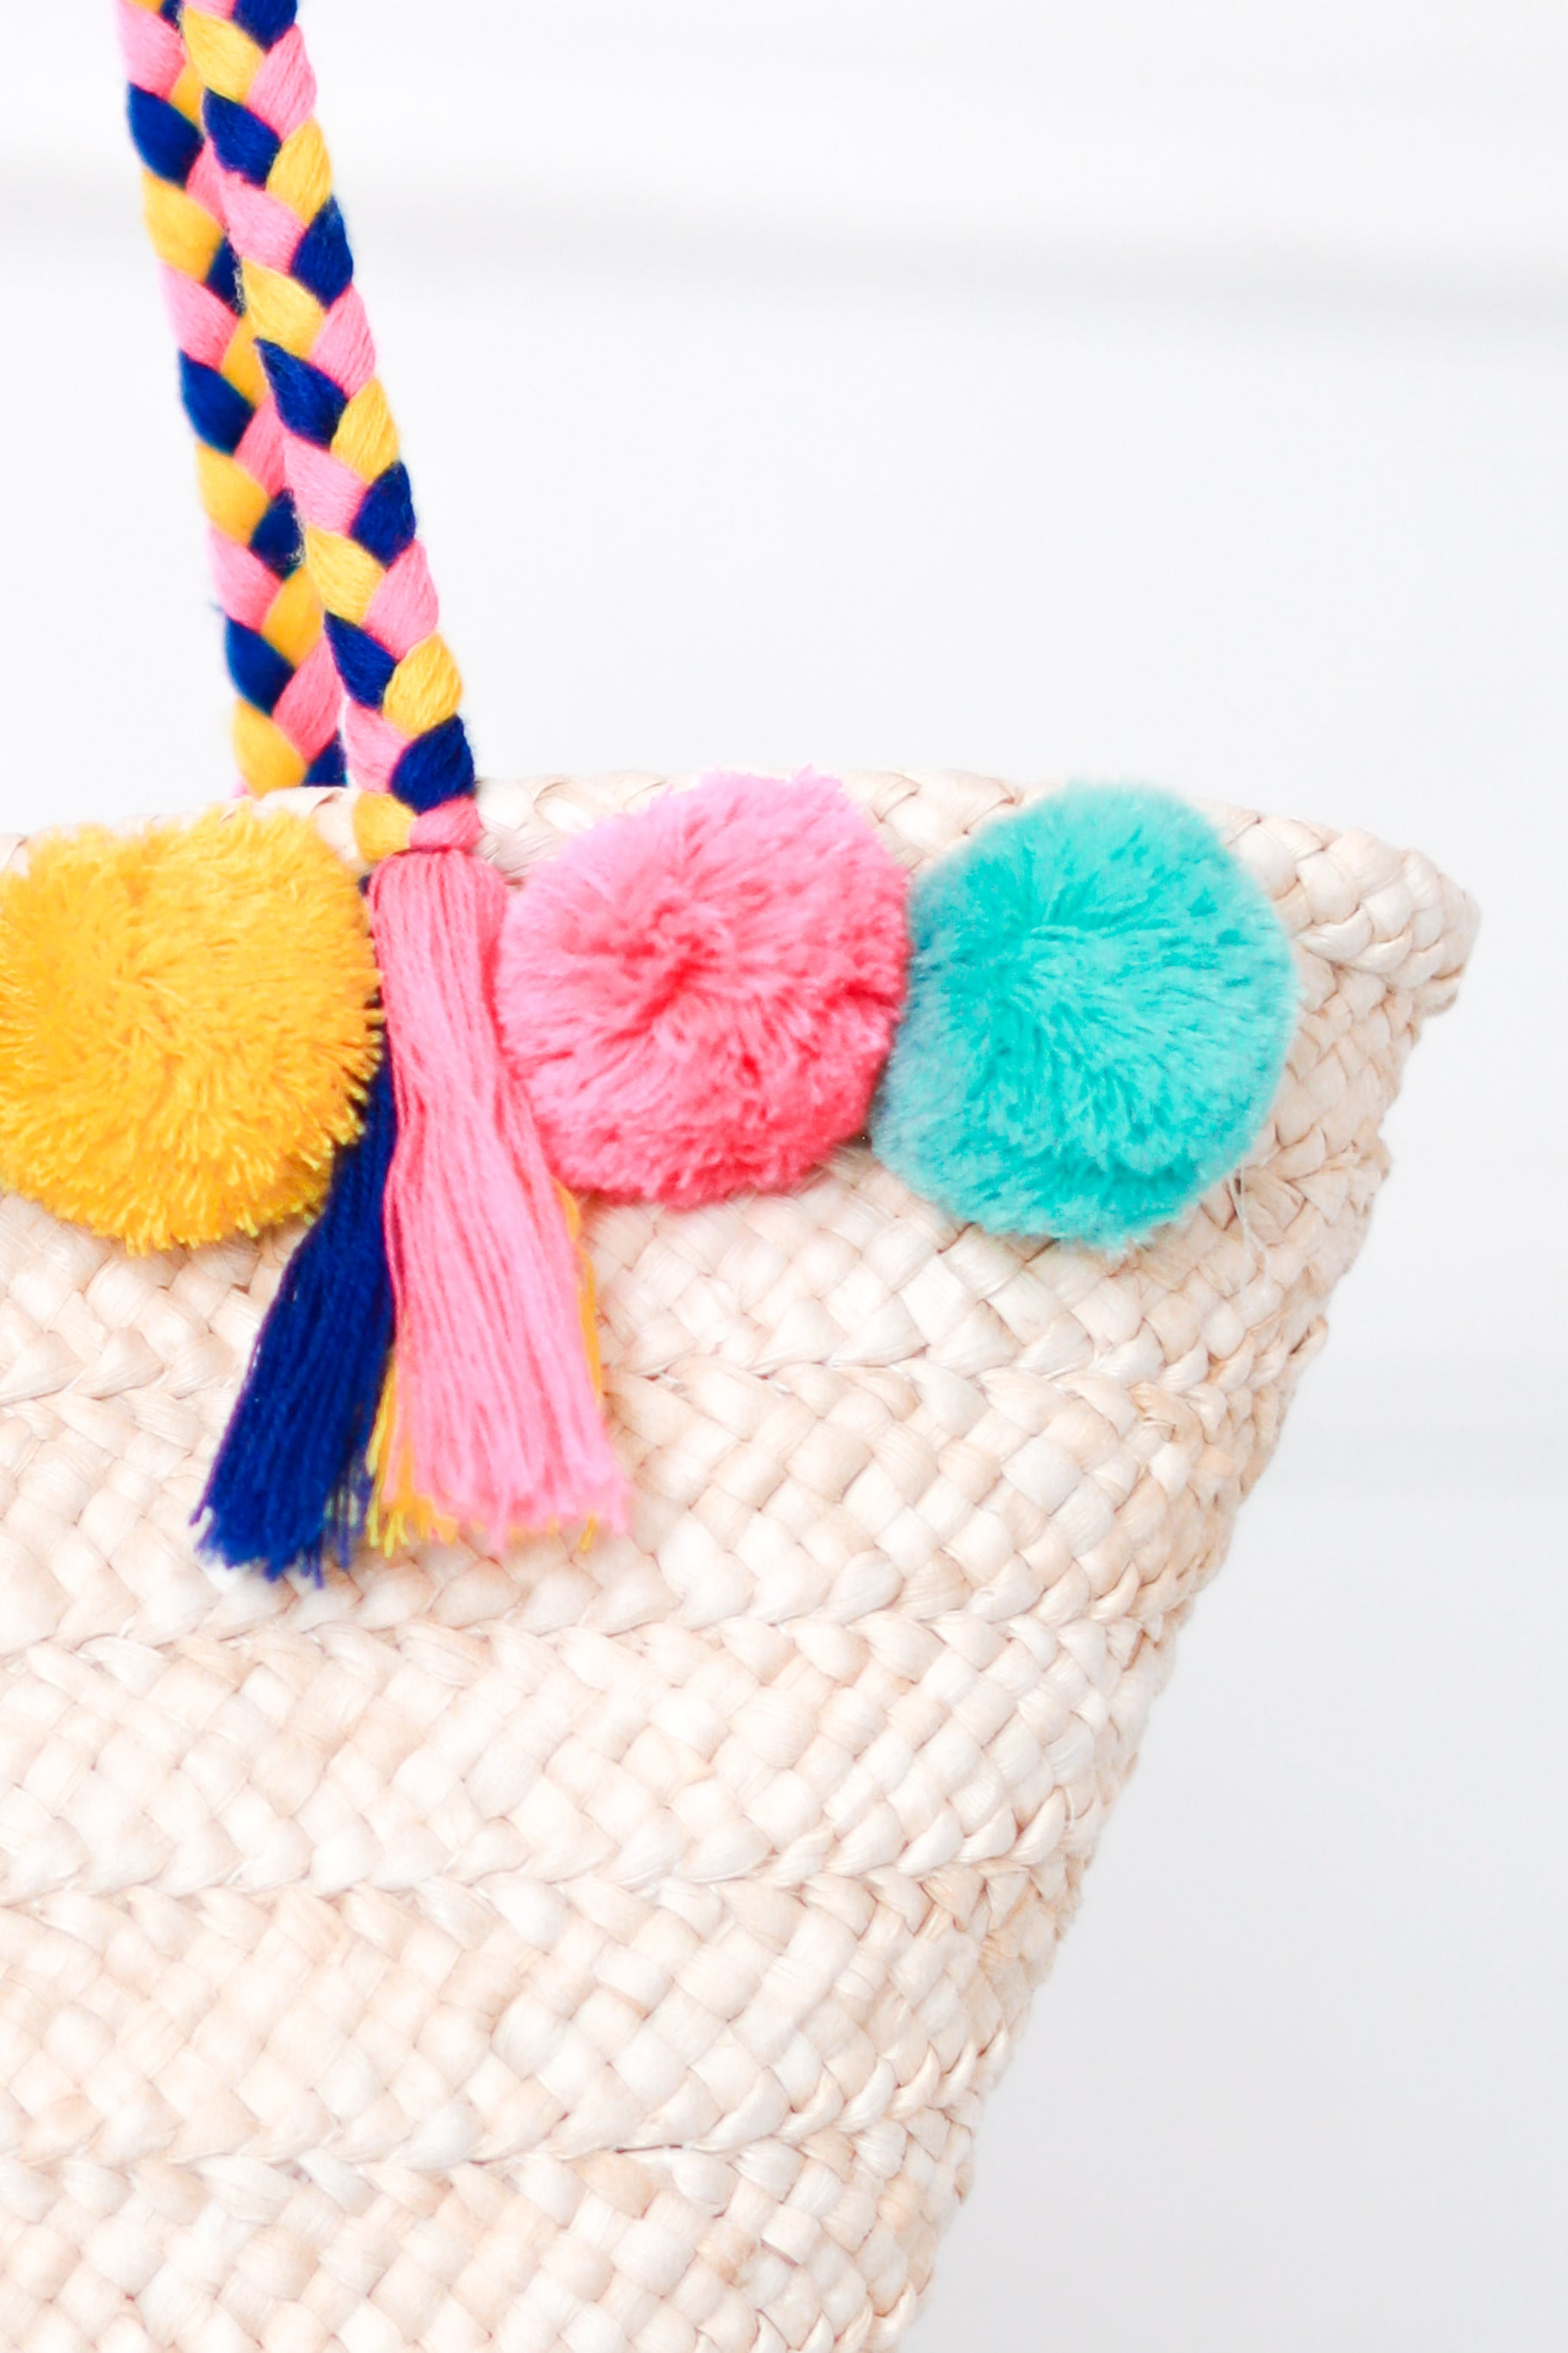 MALIBU POM POM BEACH BAG